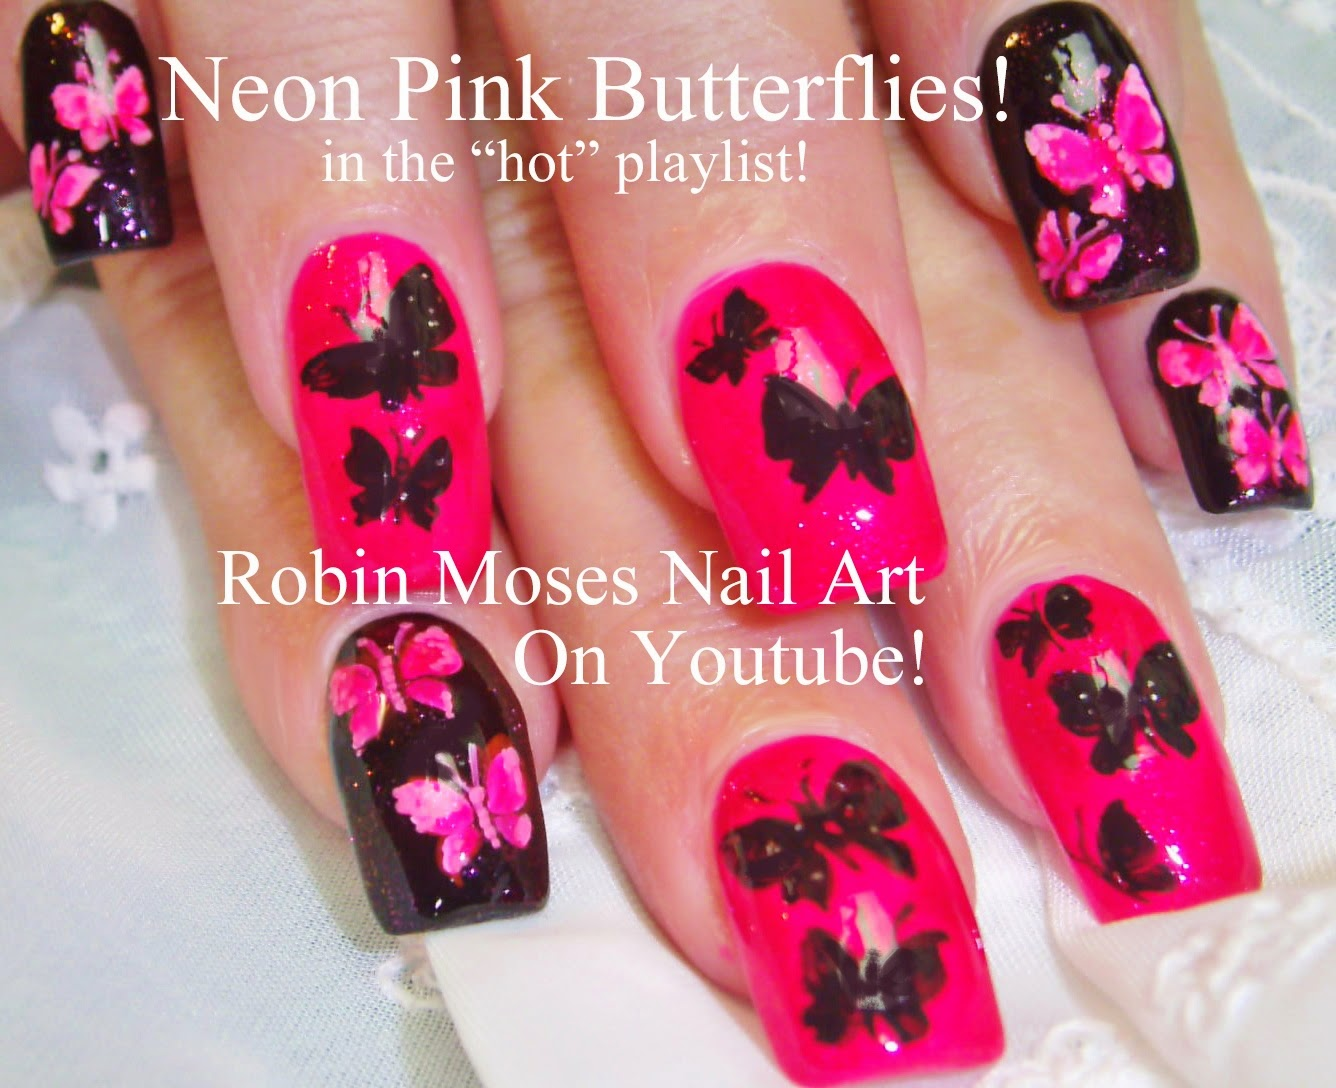 Robin moses nail art butterfly nails nails nail art nailart butterfly nails nails nail art nailart neon butterflies butterfly ideas pink butterflies pink butterfly nails butterfly nail art how to do it prinsesfo Choice Image